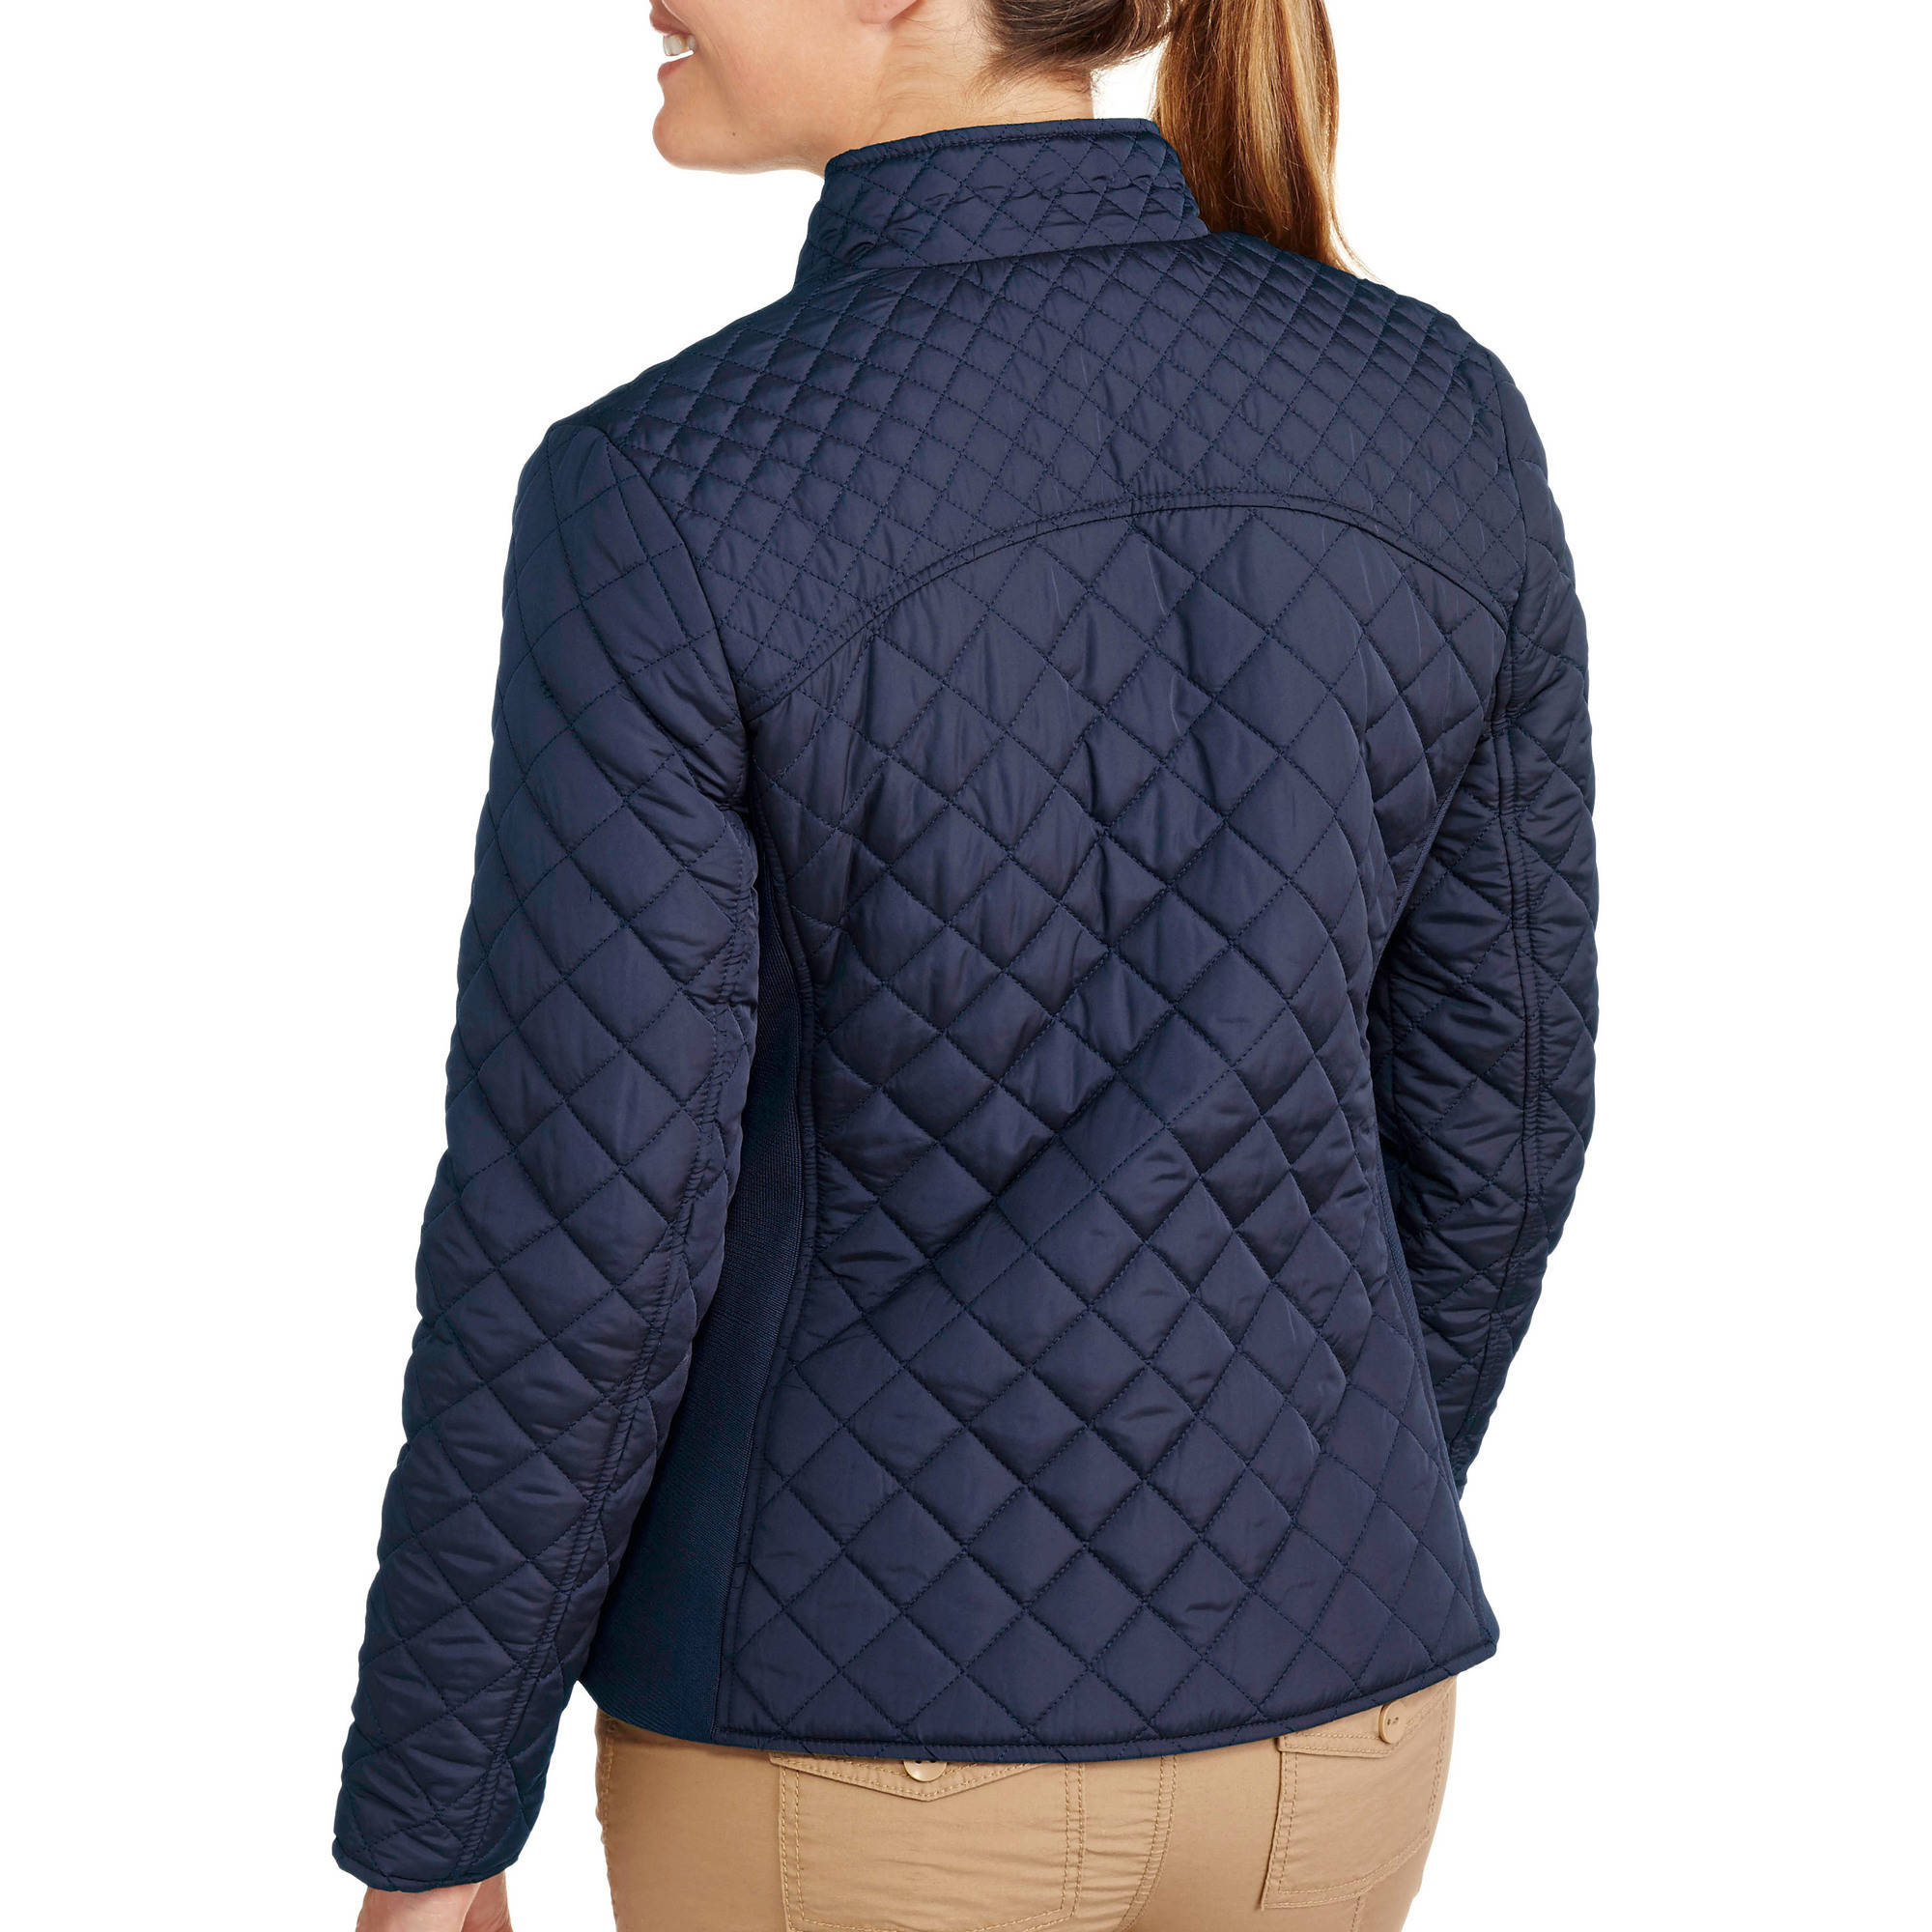 Faded Glory Women&39s Quilted Jacket - Walmart.com